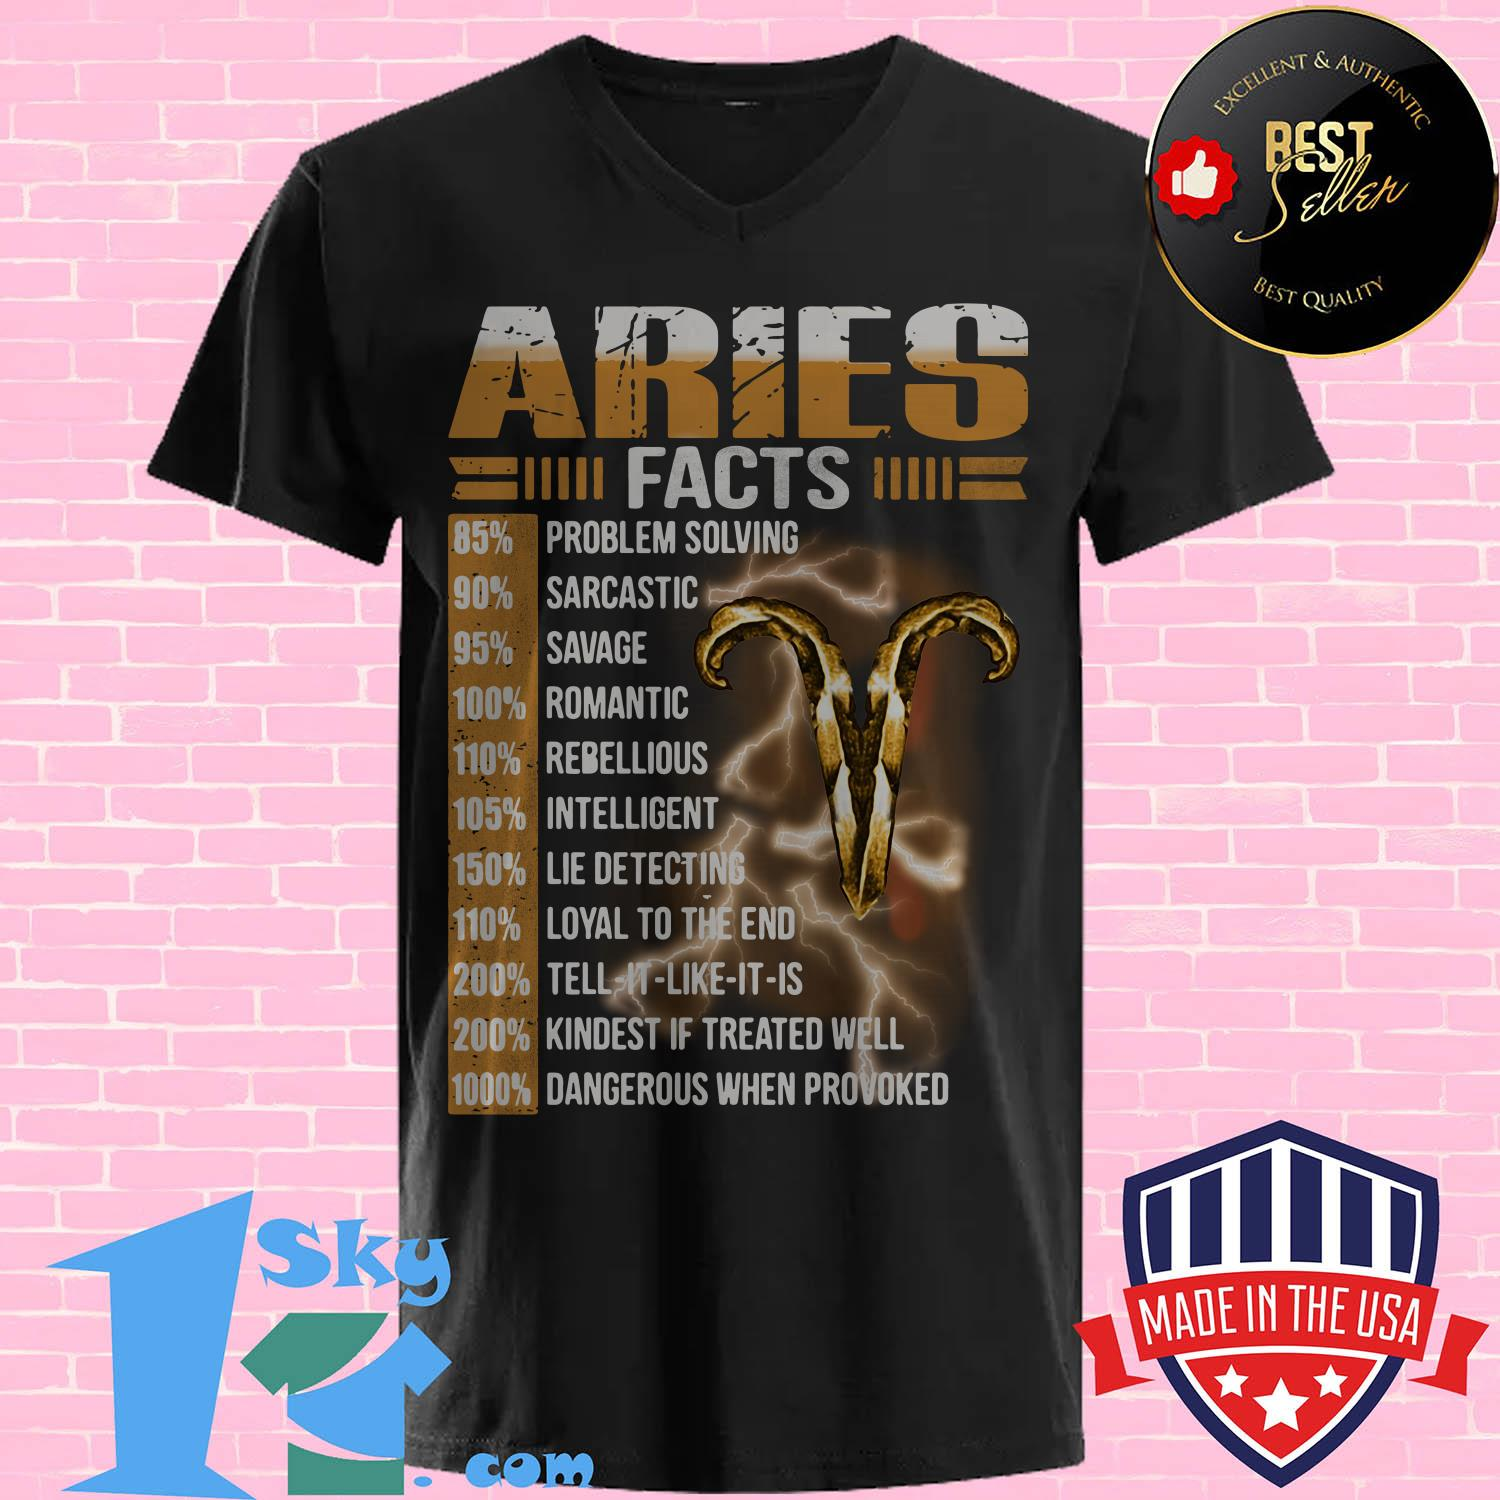 aries facts 85 problem solving 90 sarcastic 95 savage v neck - Aries facts 85% problem solving 90% sarcastic 95% savage shirt